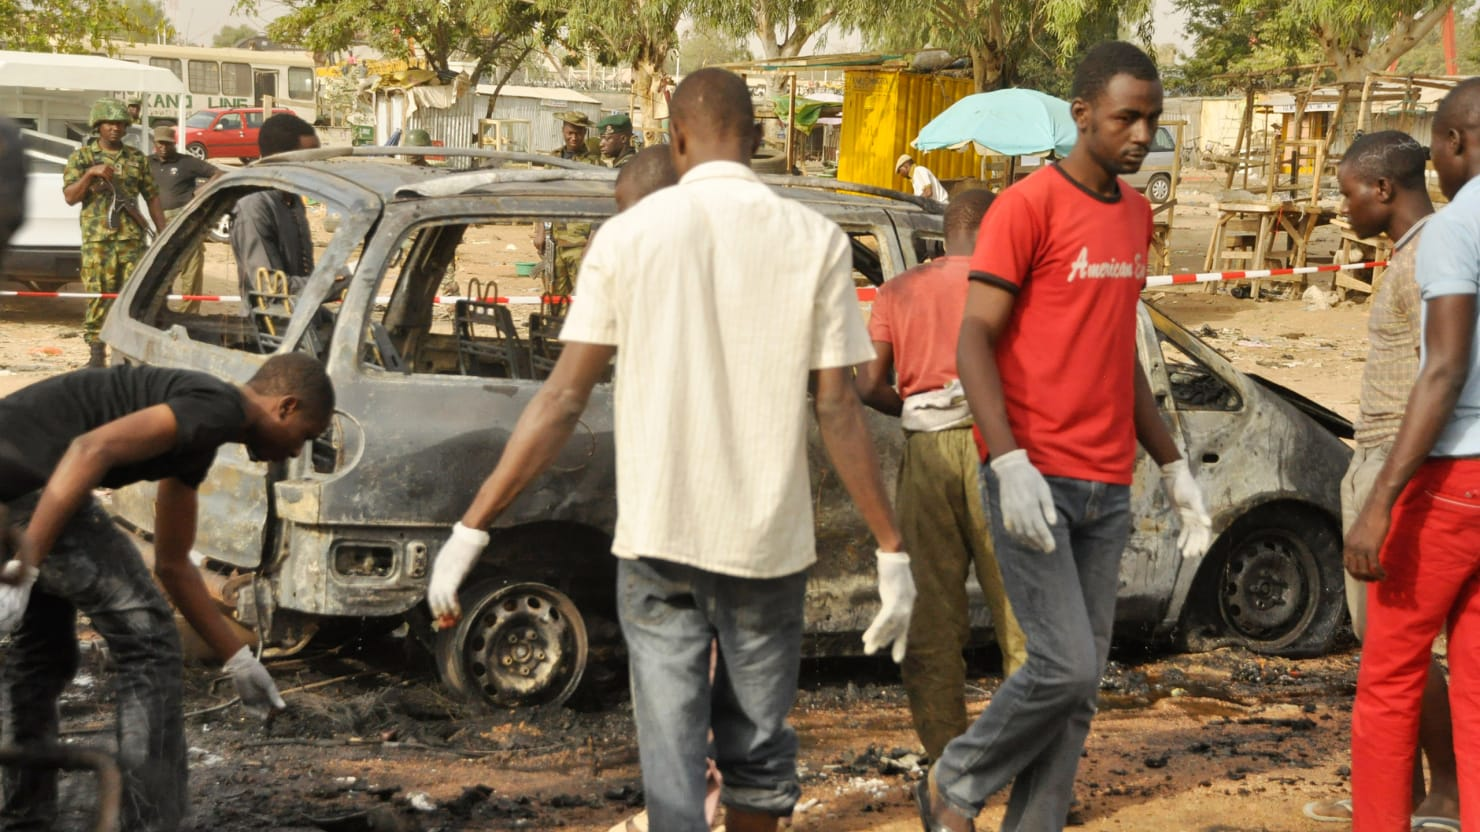 Boko Haram Are Finally Losing. And That Makes Them Extra Dangerous.